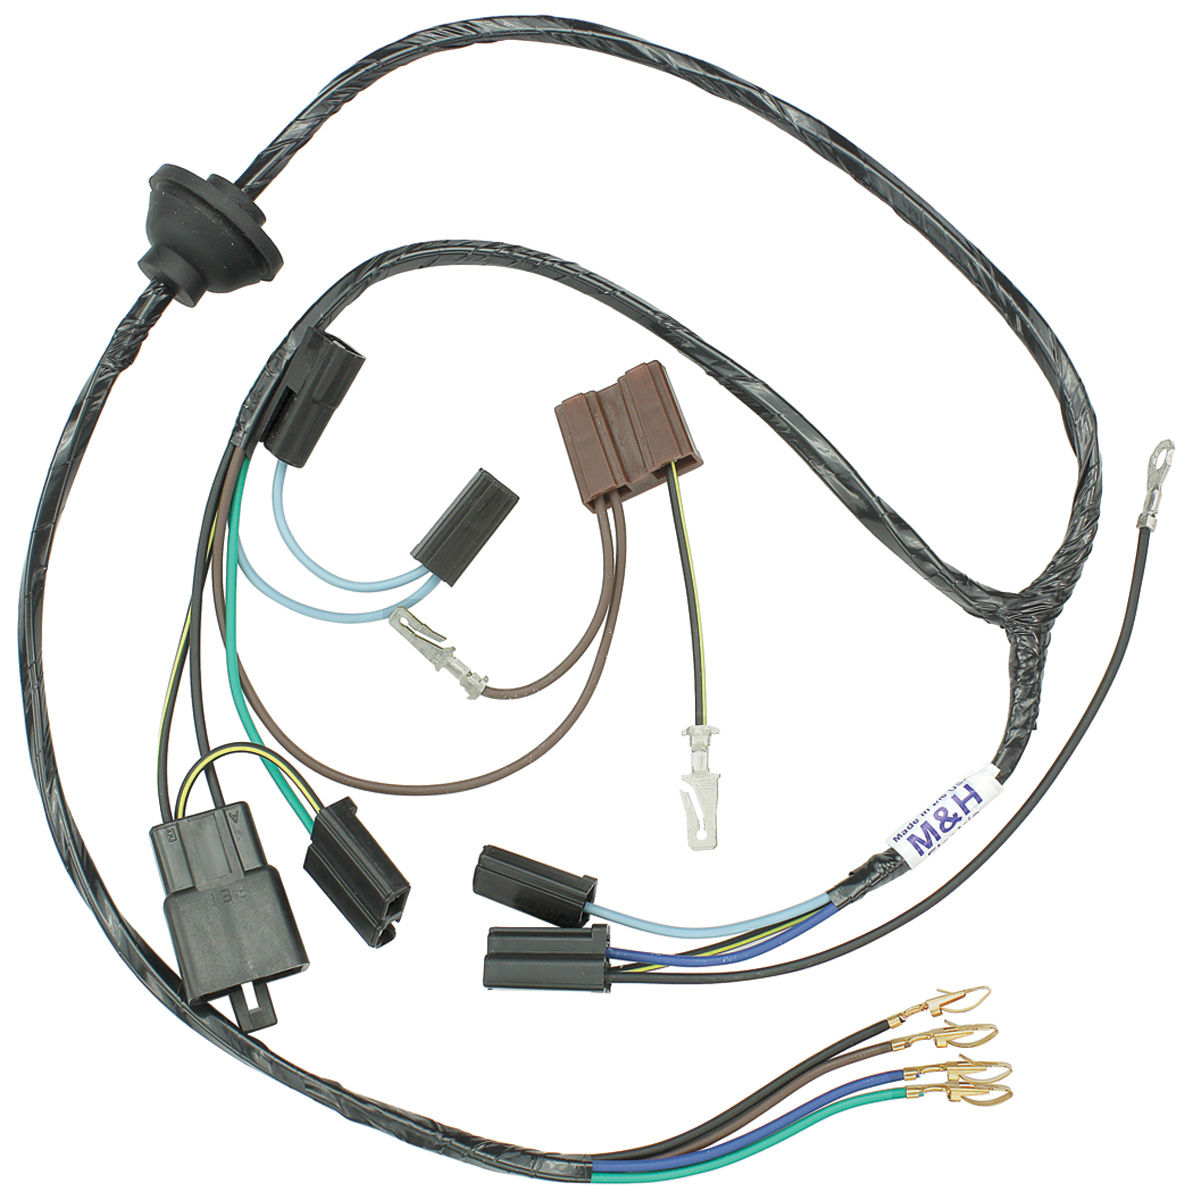 28255 lrg m&h 1970 monte carlo wiper motor harness (electro tip demand monte carlo wiring harness at bayanpartner.co